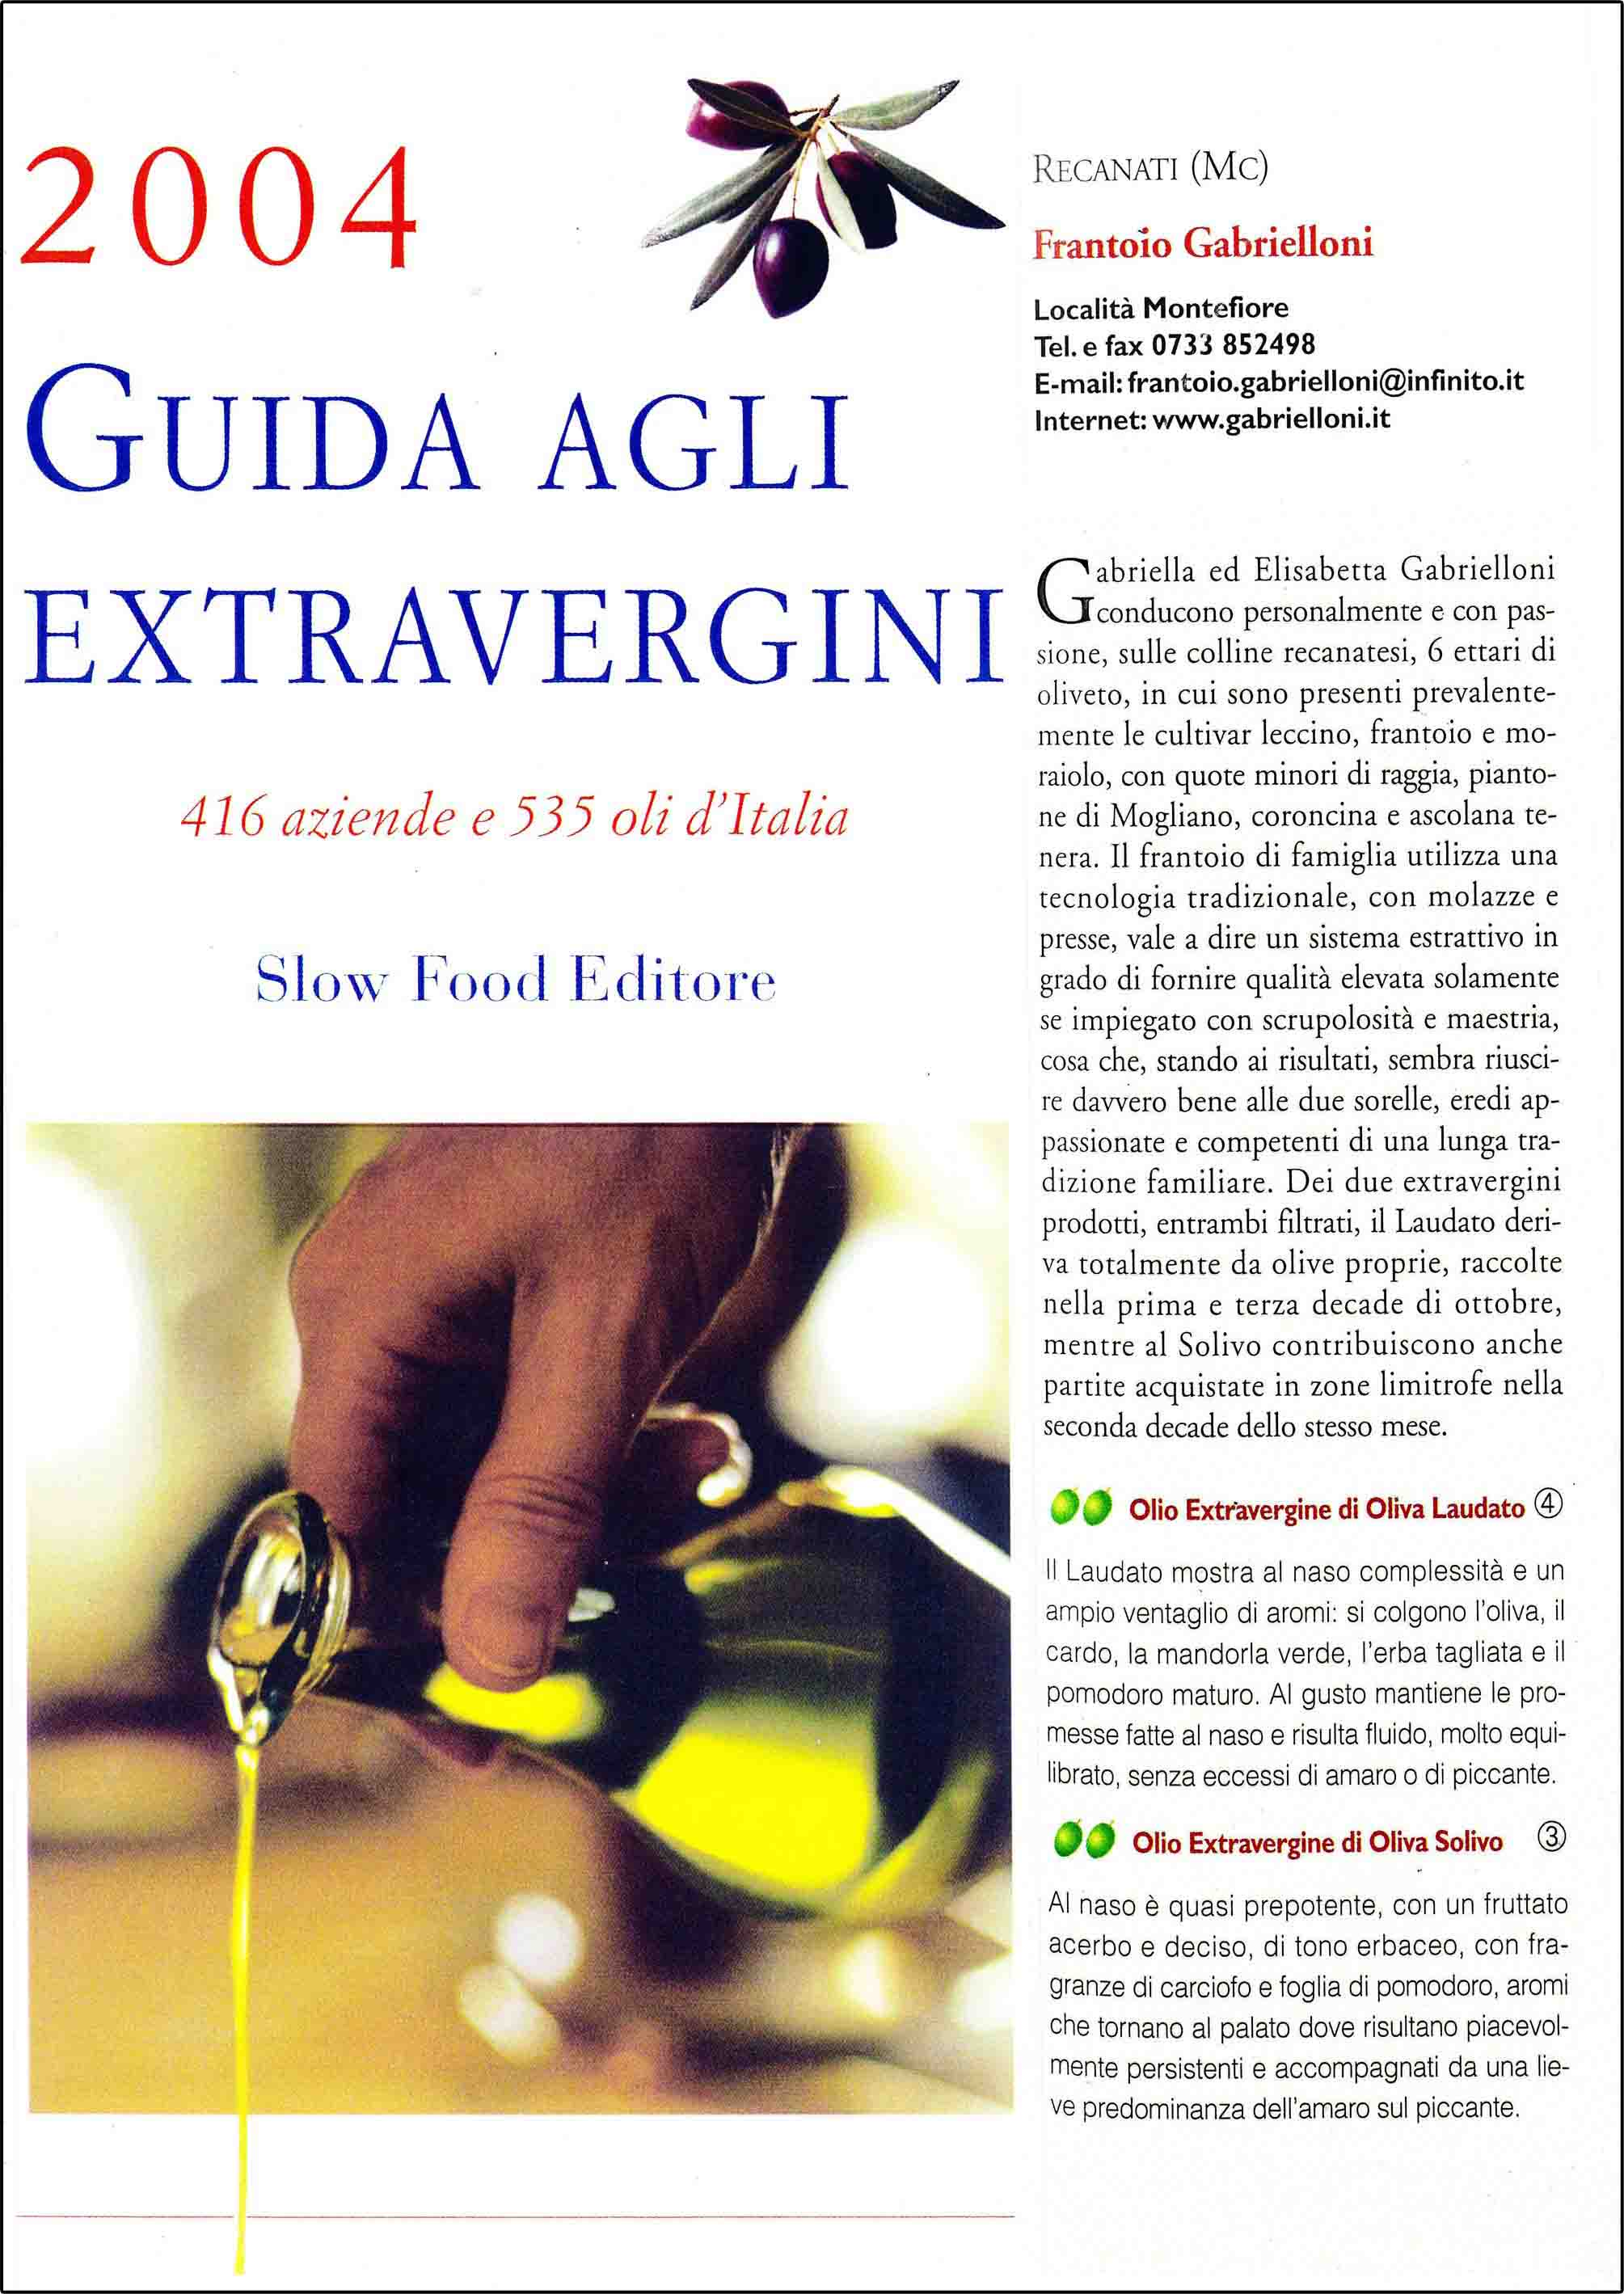 Slow Food Guide to Extra Virgin Olive Oils 2004